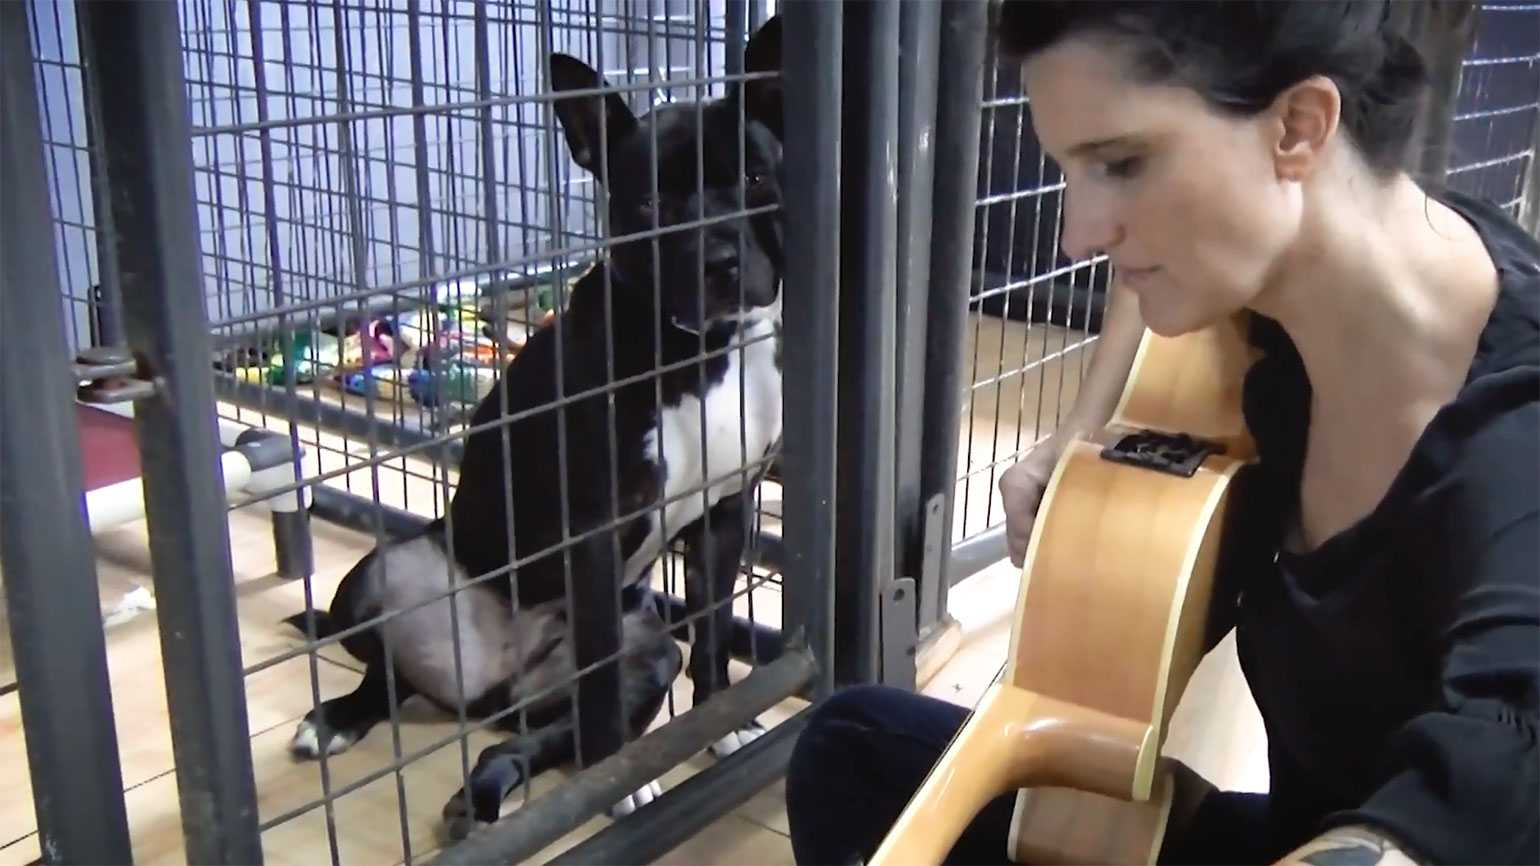 Kitty Snyder serenades shelter dogs and cats.